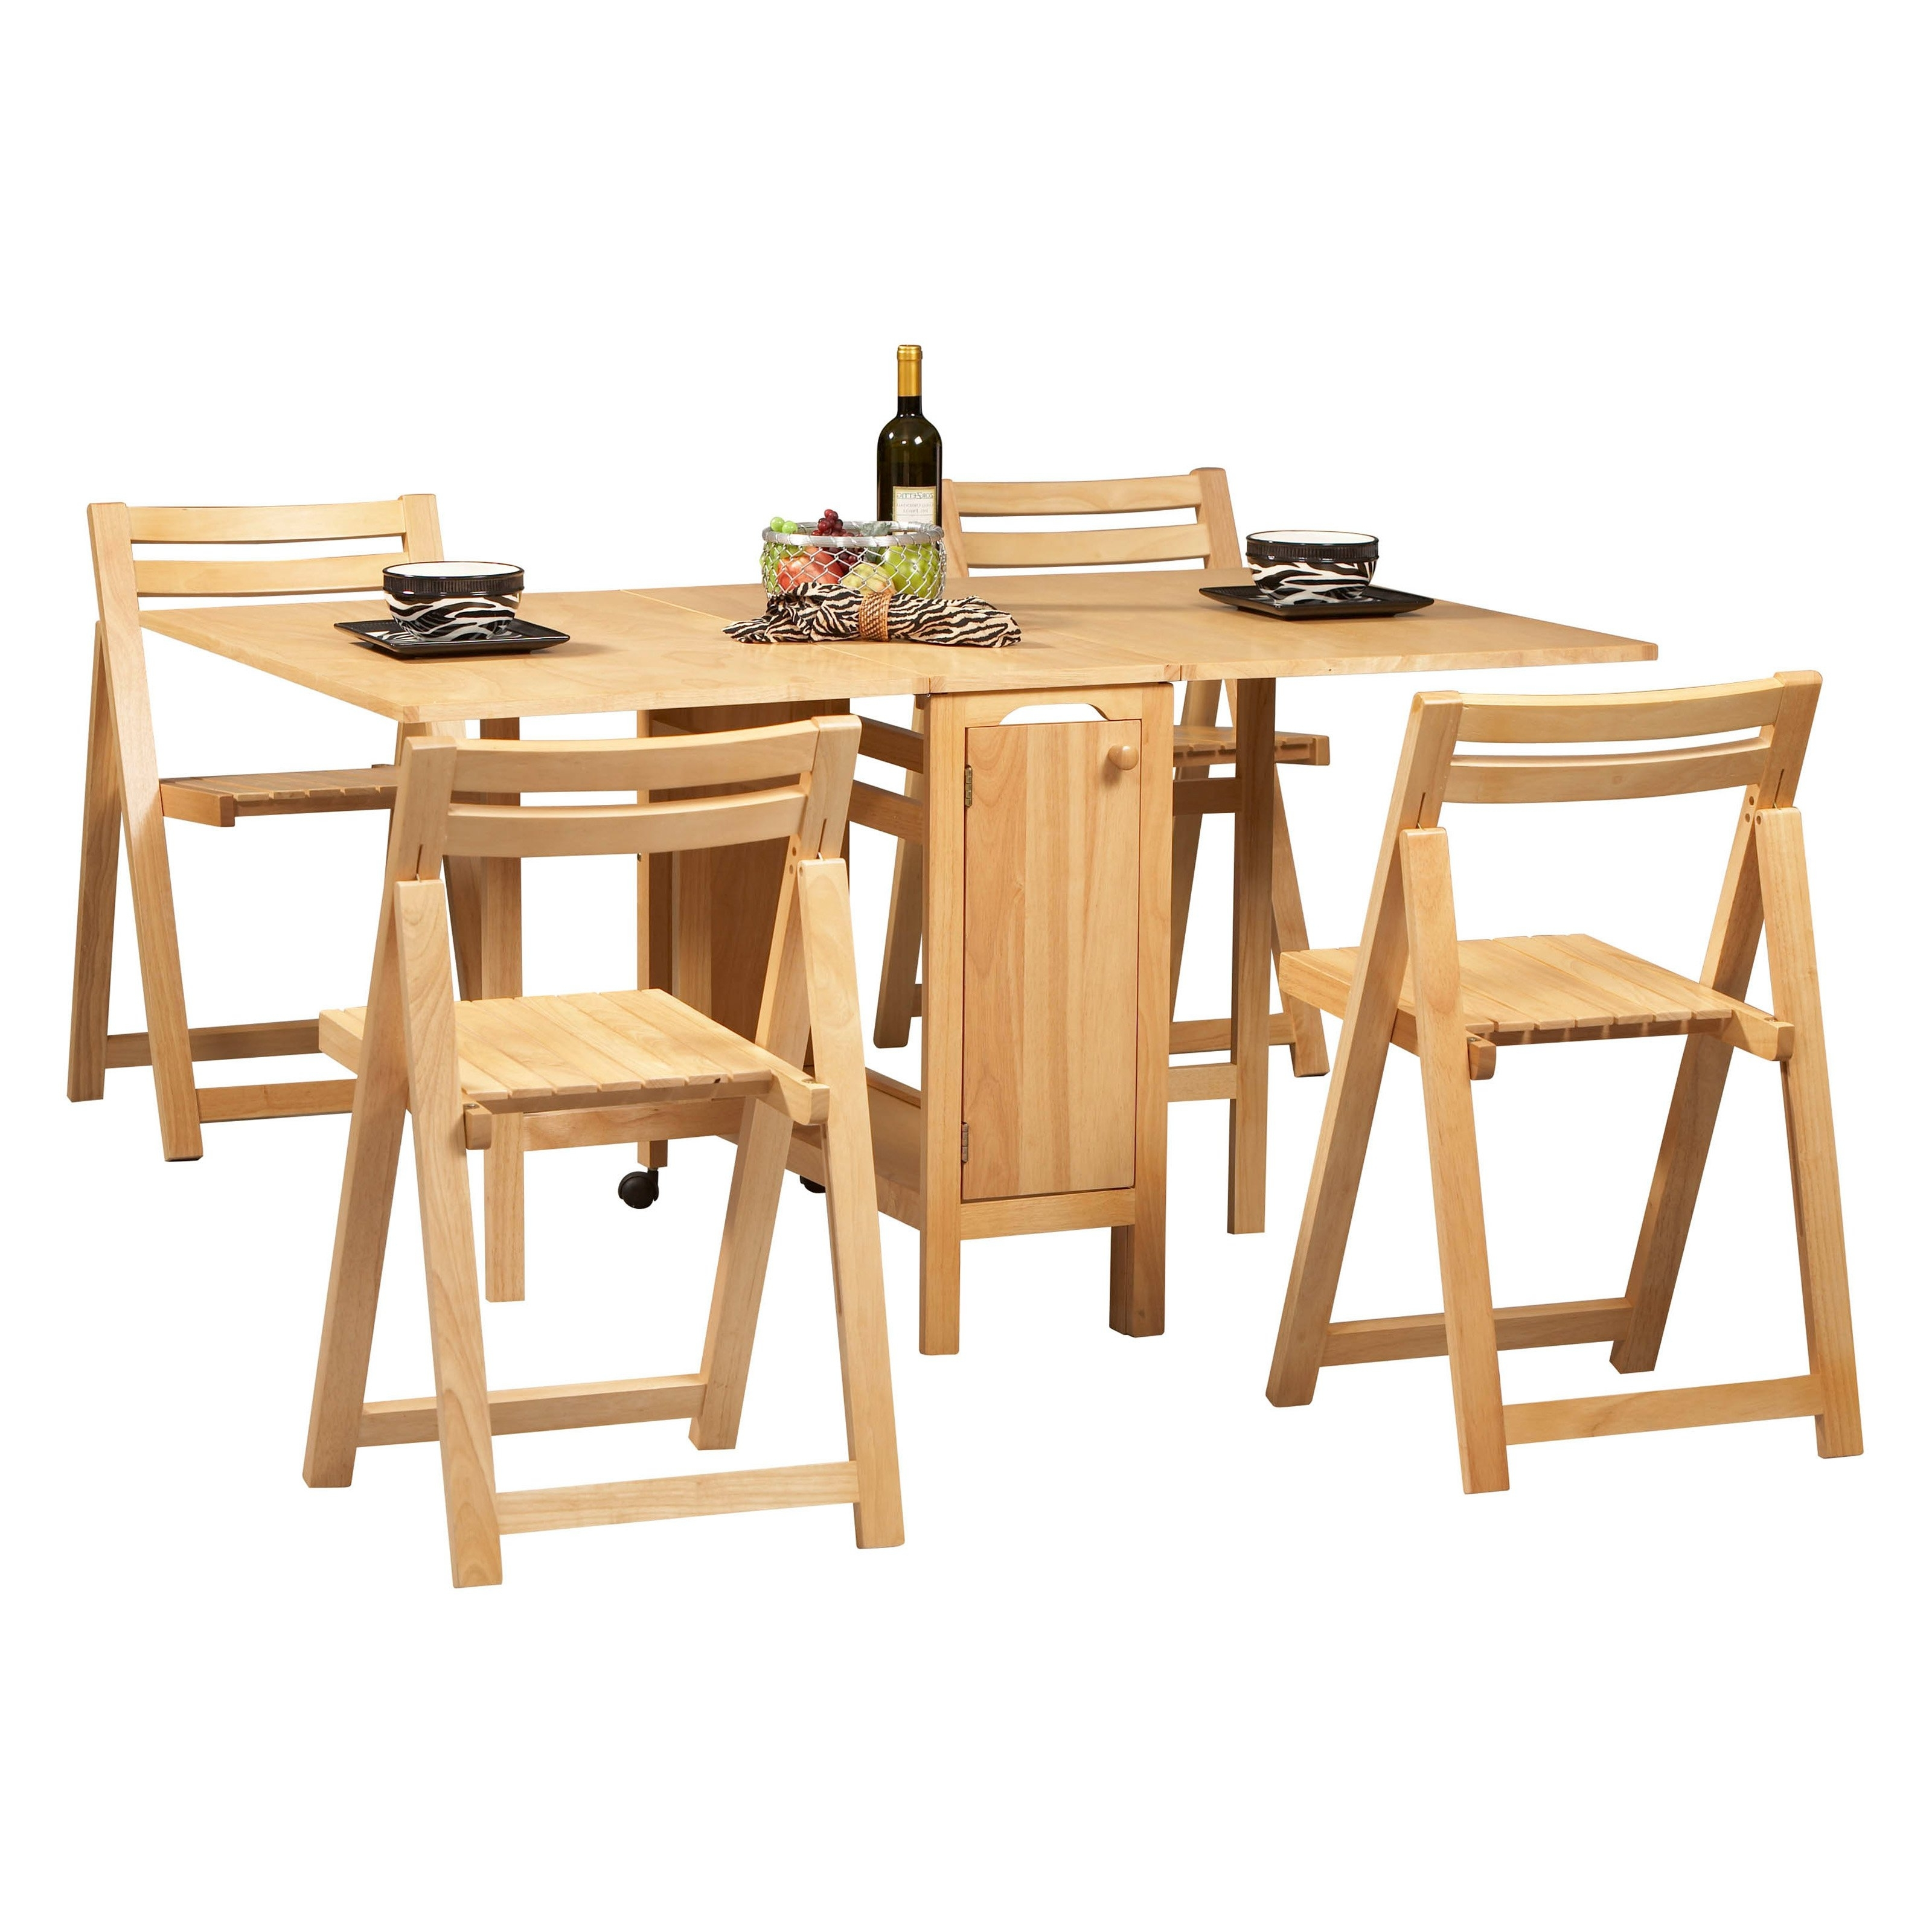 62 Foldable Dining Table Set, Free Shipping Boshile Outdoor Folding For Most Popular Large Folding Dining Tables (View 2 of 25)